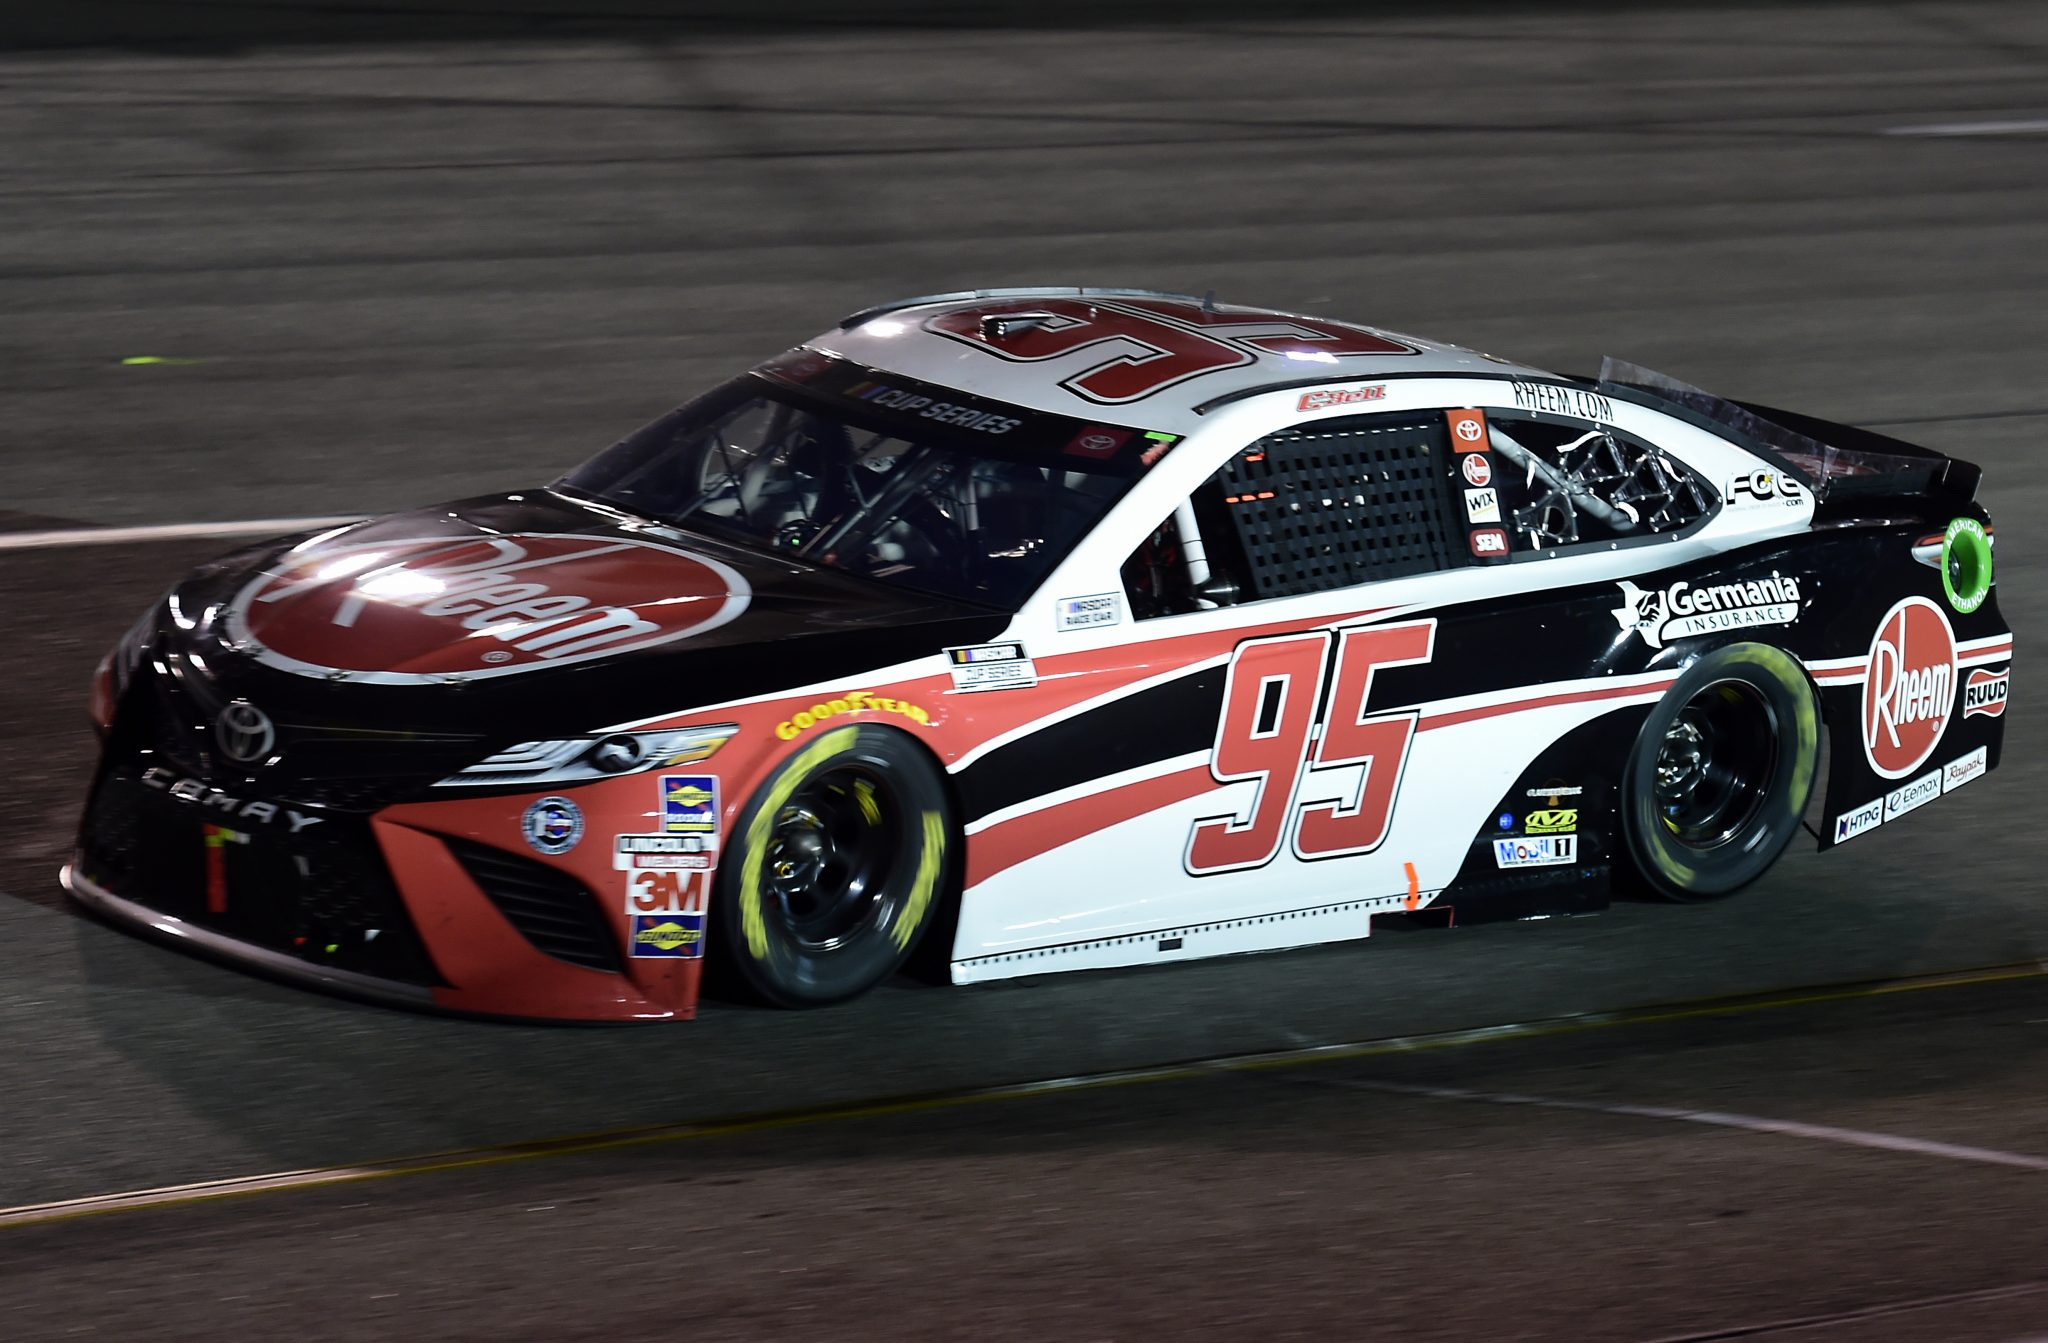 RICHMOND, VIRGINIA - SEPTEMBER 12: Christopher Bell, driver of the #95 Toyota, drives during the NASCAR Cup Series Federated Auto Parts 400 at Richmond Raceway on September 12, 2020 in Richmond, Virginia. (Photo by Jared C. Tilton/Getty Images) | Getty Images